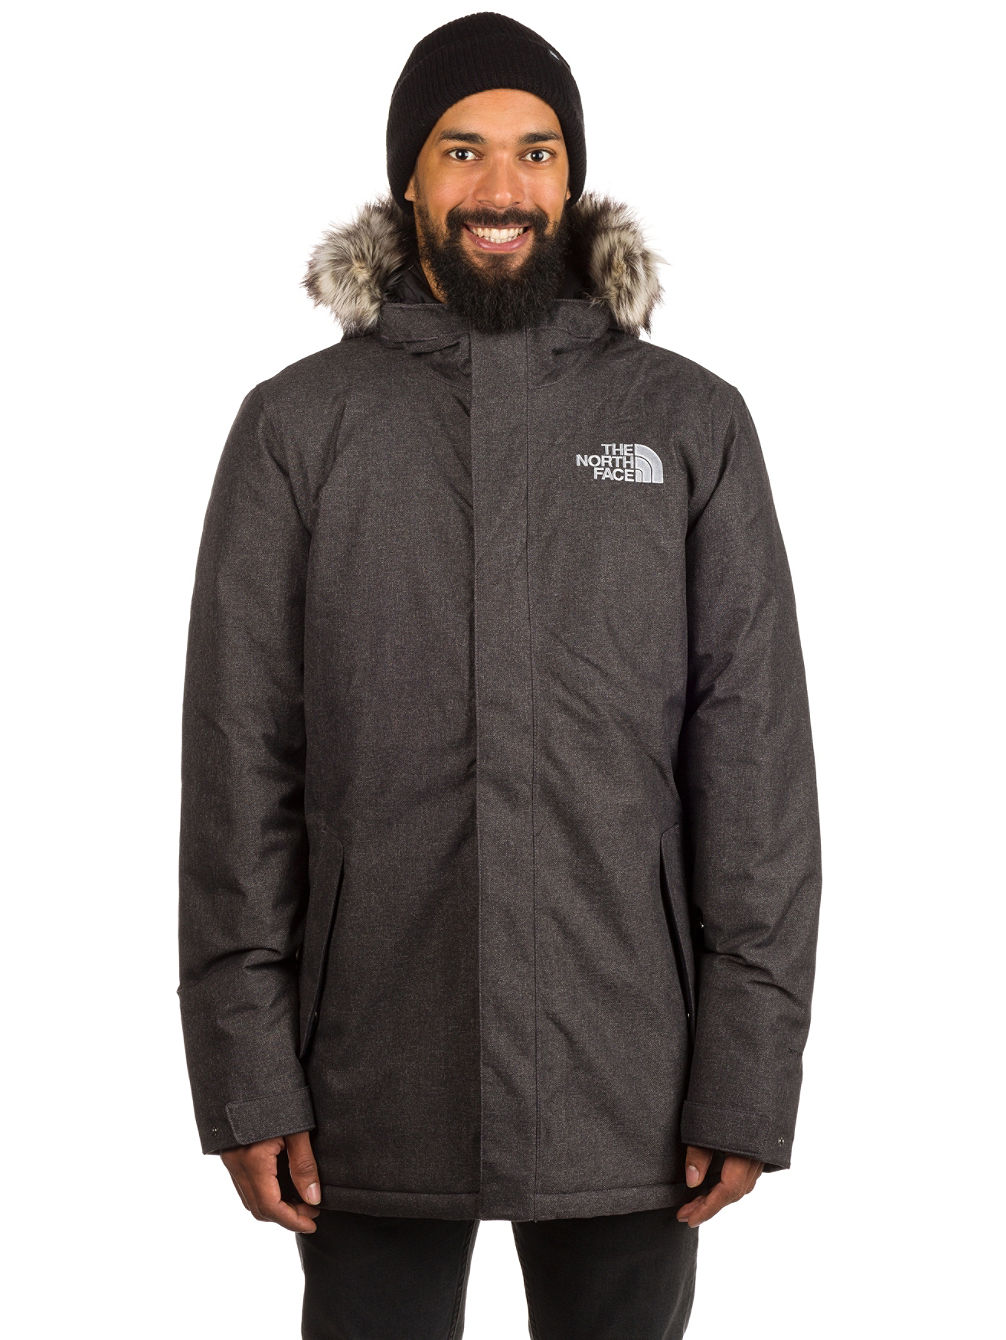 Buy THE NORTH FACE Zaneck Jacket online at blue-tomato.com 5efe3526e